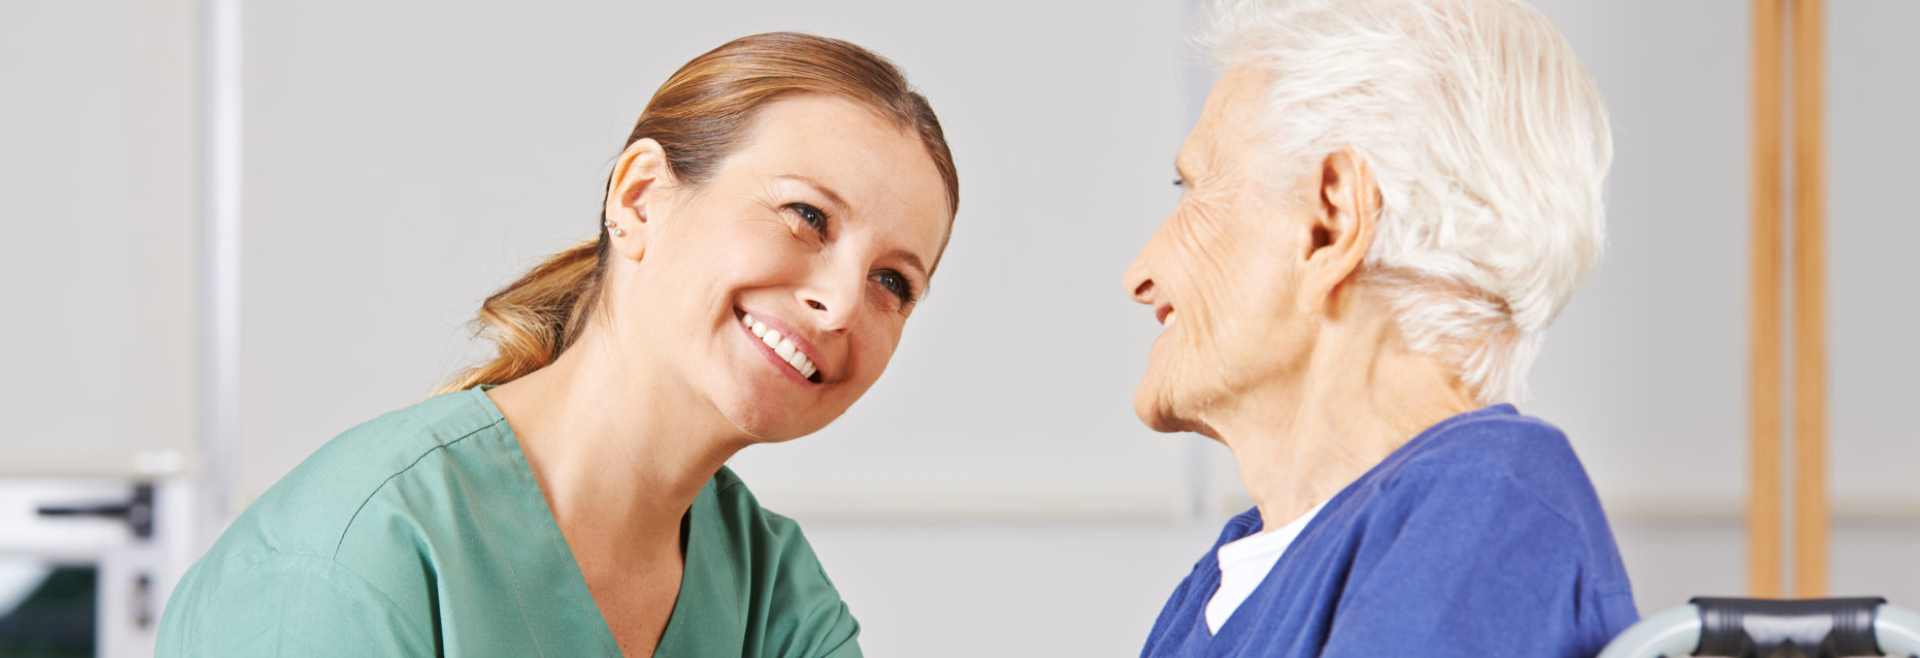 Elder patient and caregiver